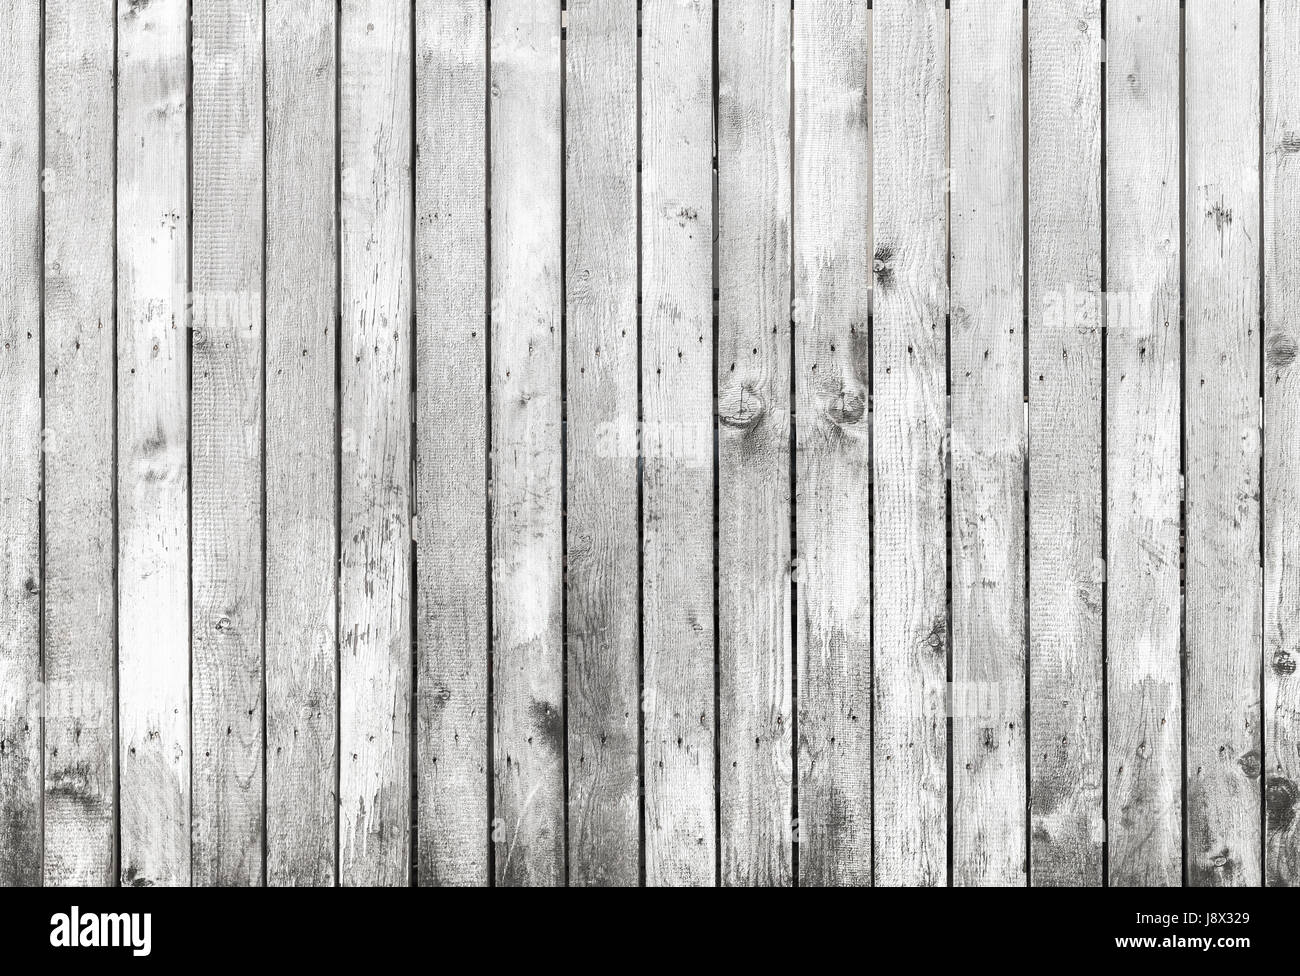 Old White Grungy Wooden Fence, Detailed Flat Background Photo Texture